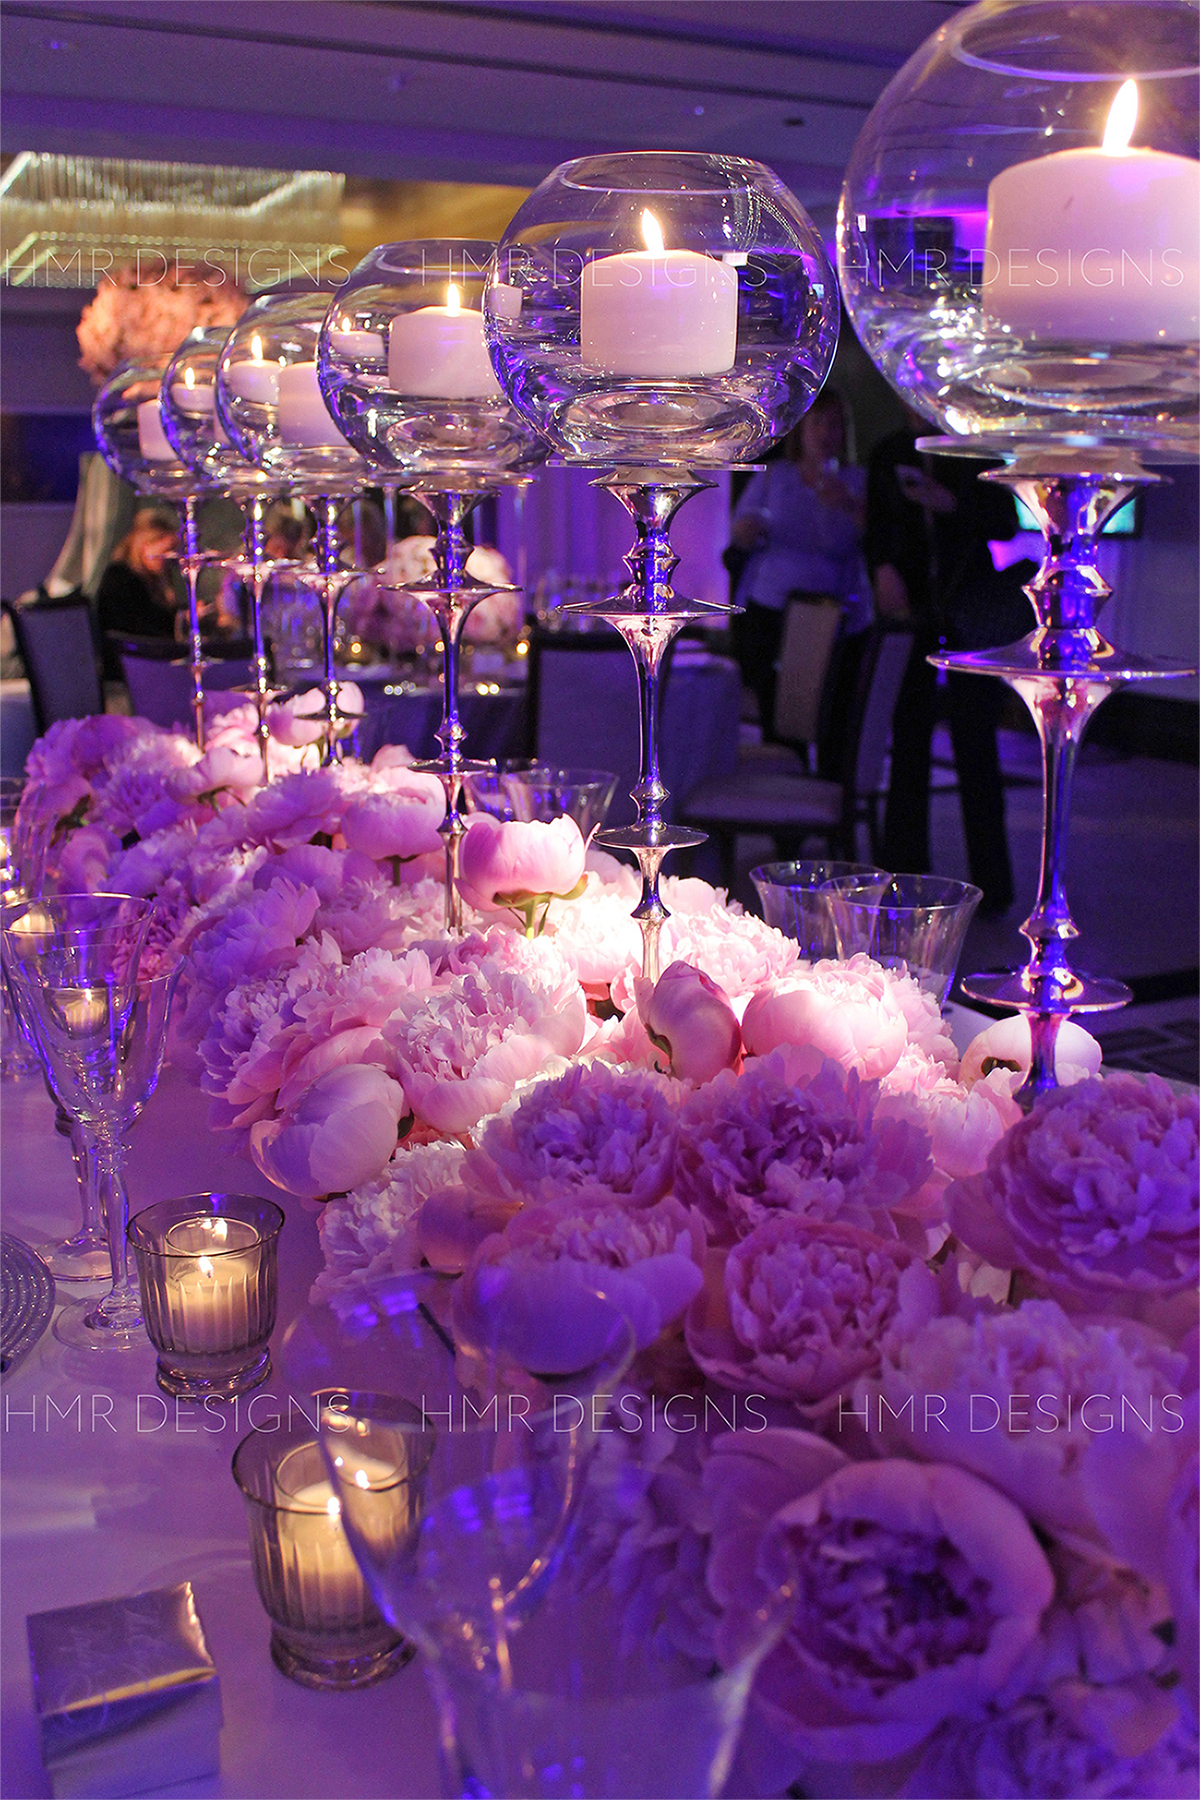 Lush, plentiful peonies mixed with sleek silver candlelight for centerpieces designed by HMR Designs for a luxury wedding at the Langham Chicago